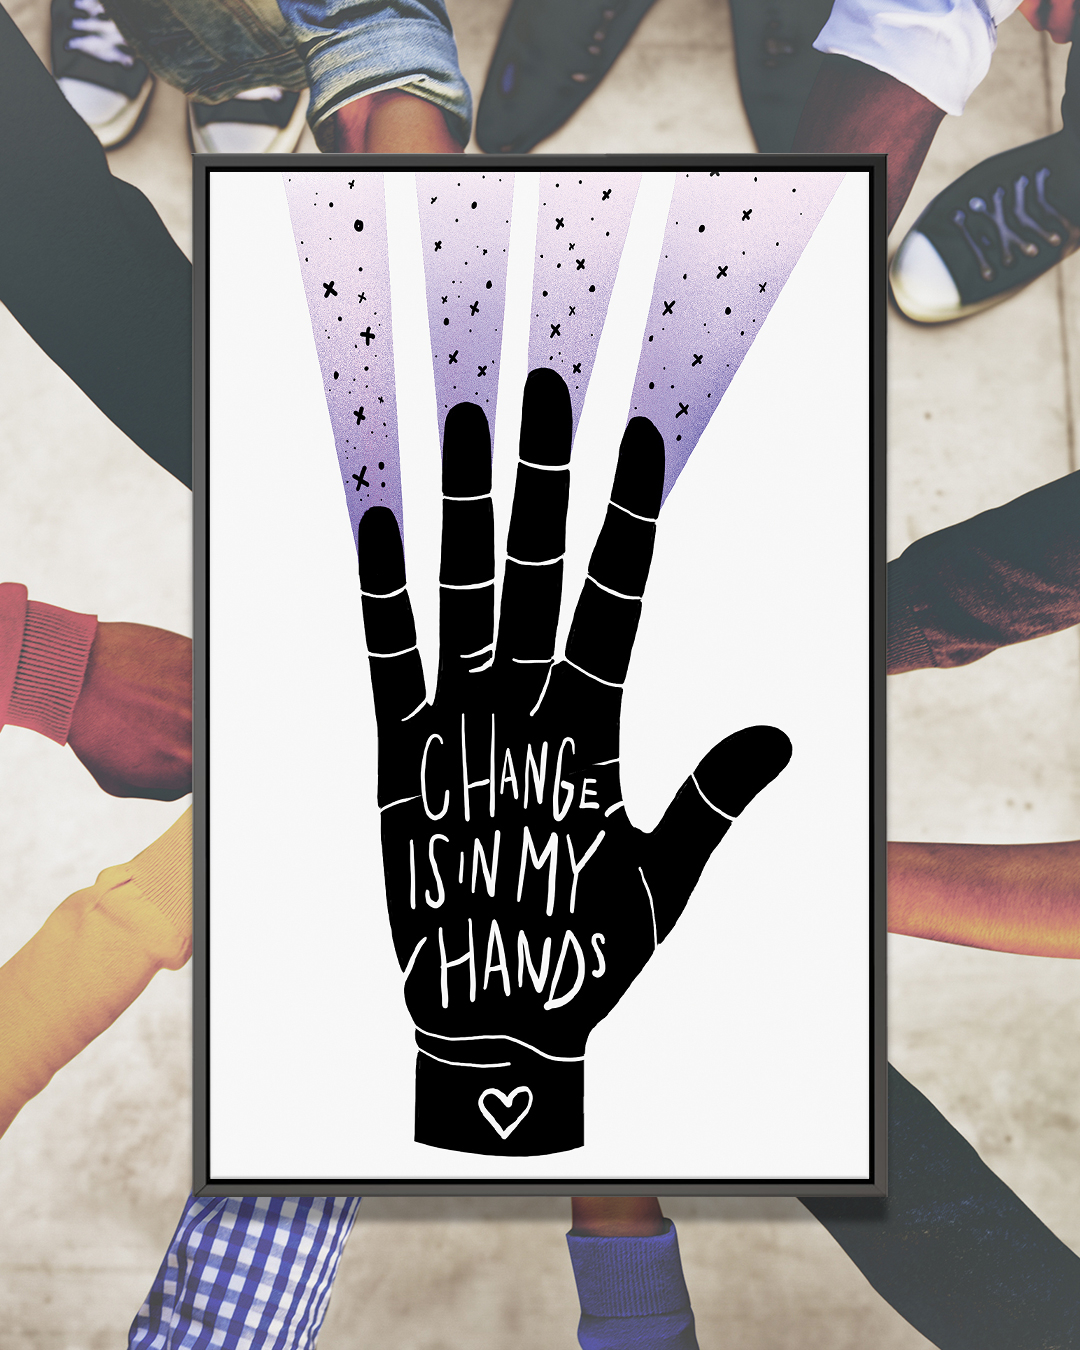 """Change Is In My Hands"" by Jason Naylor shows the phrase ""Change is in my hands"" written in white on a black hand with streaks of purple coming off the fingertips."